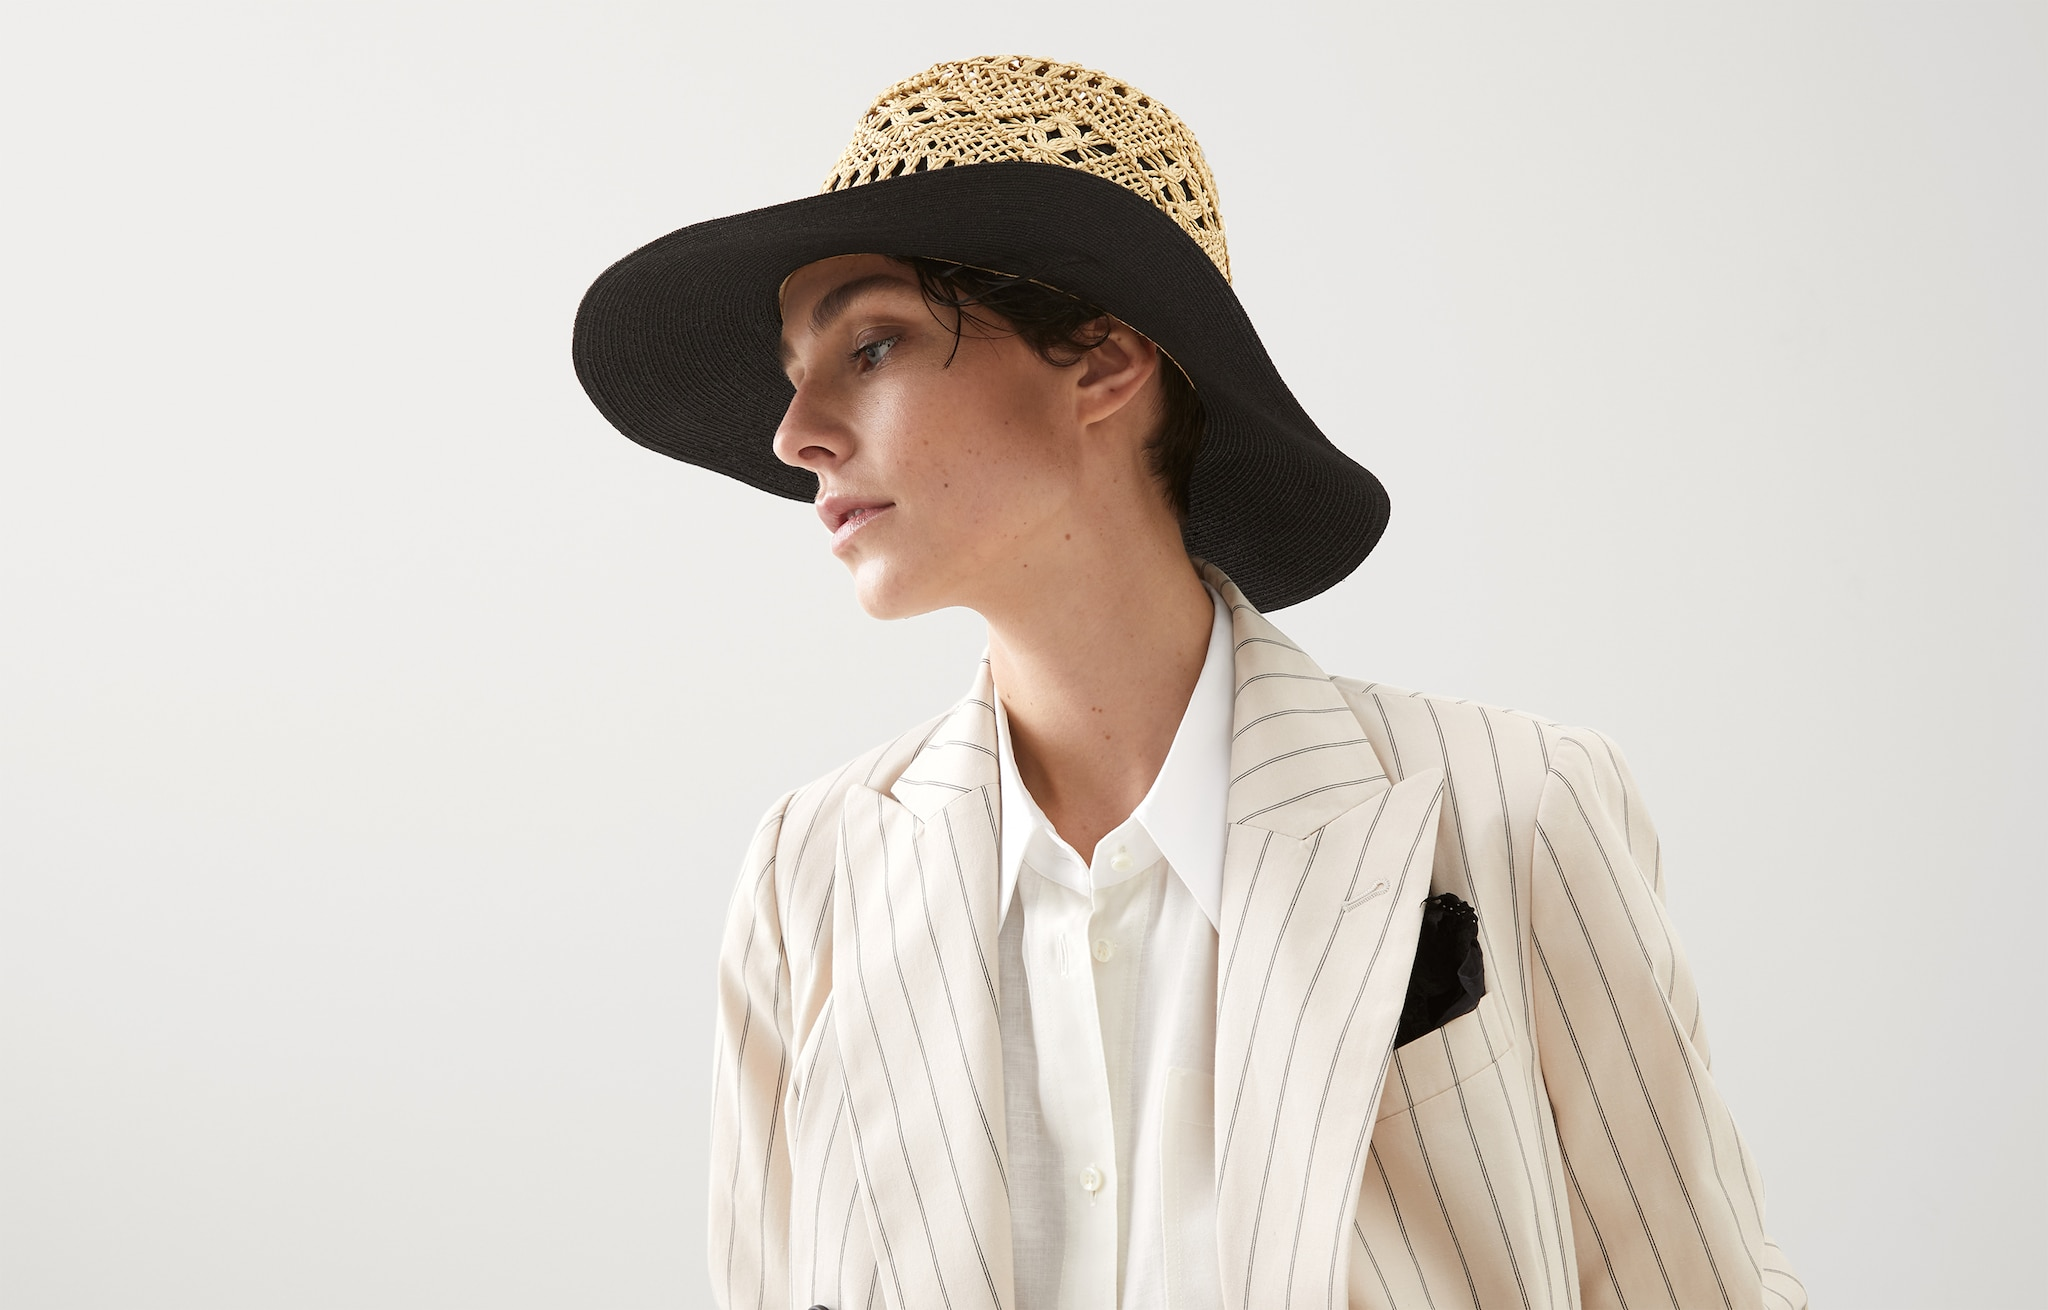 Hat - Horizontal view